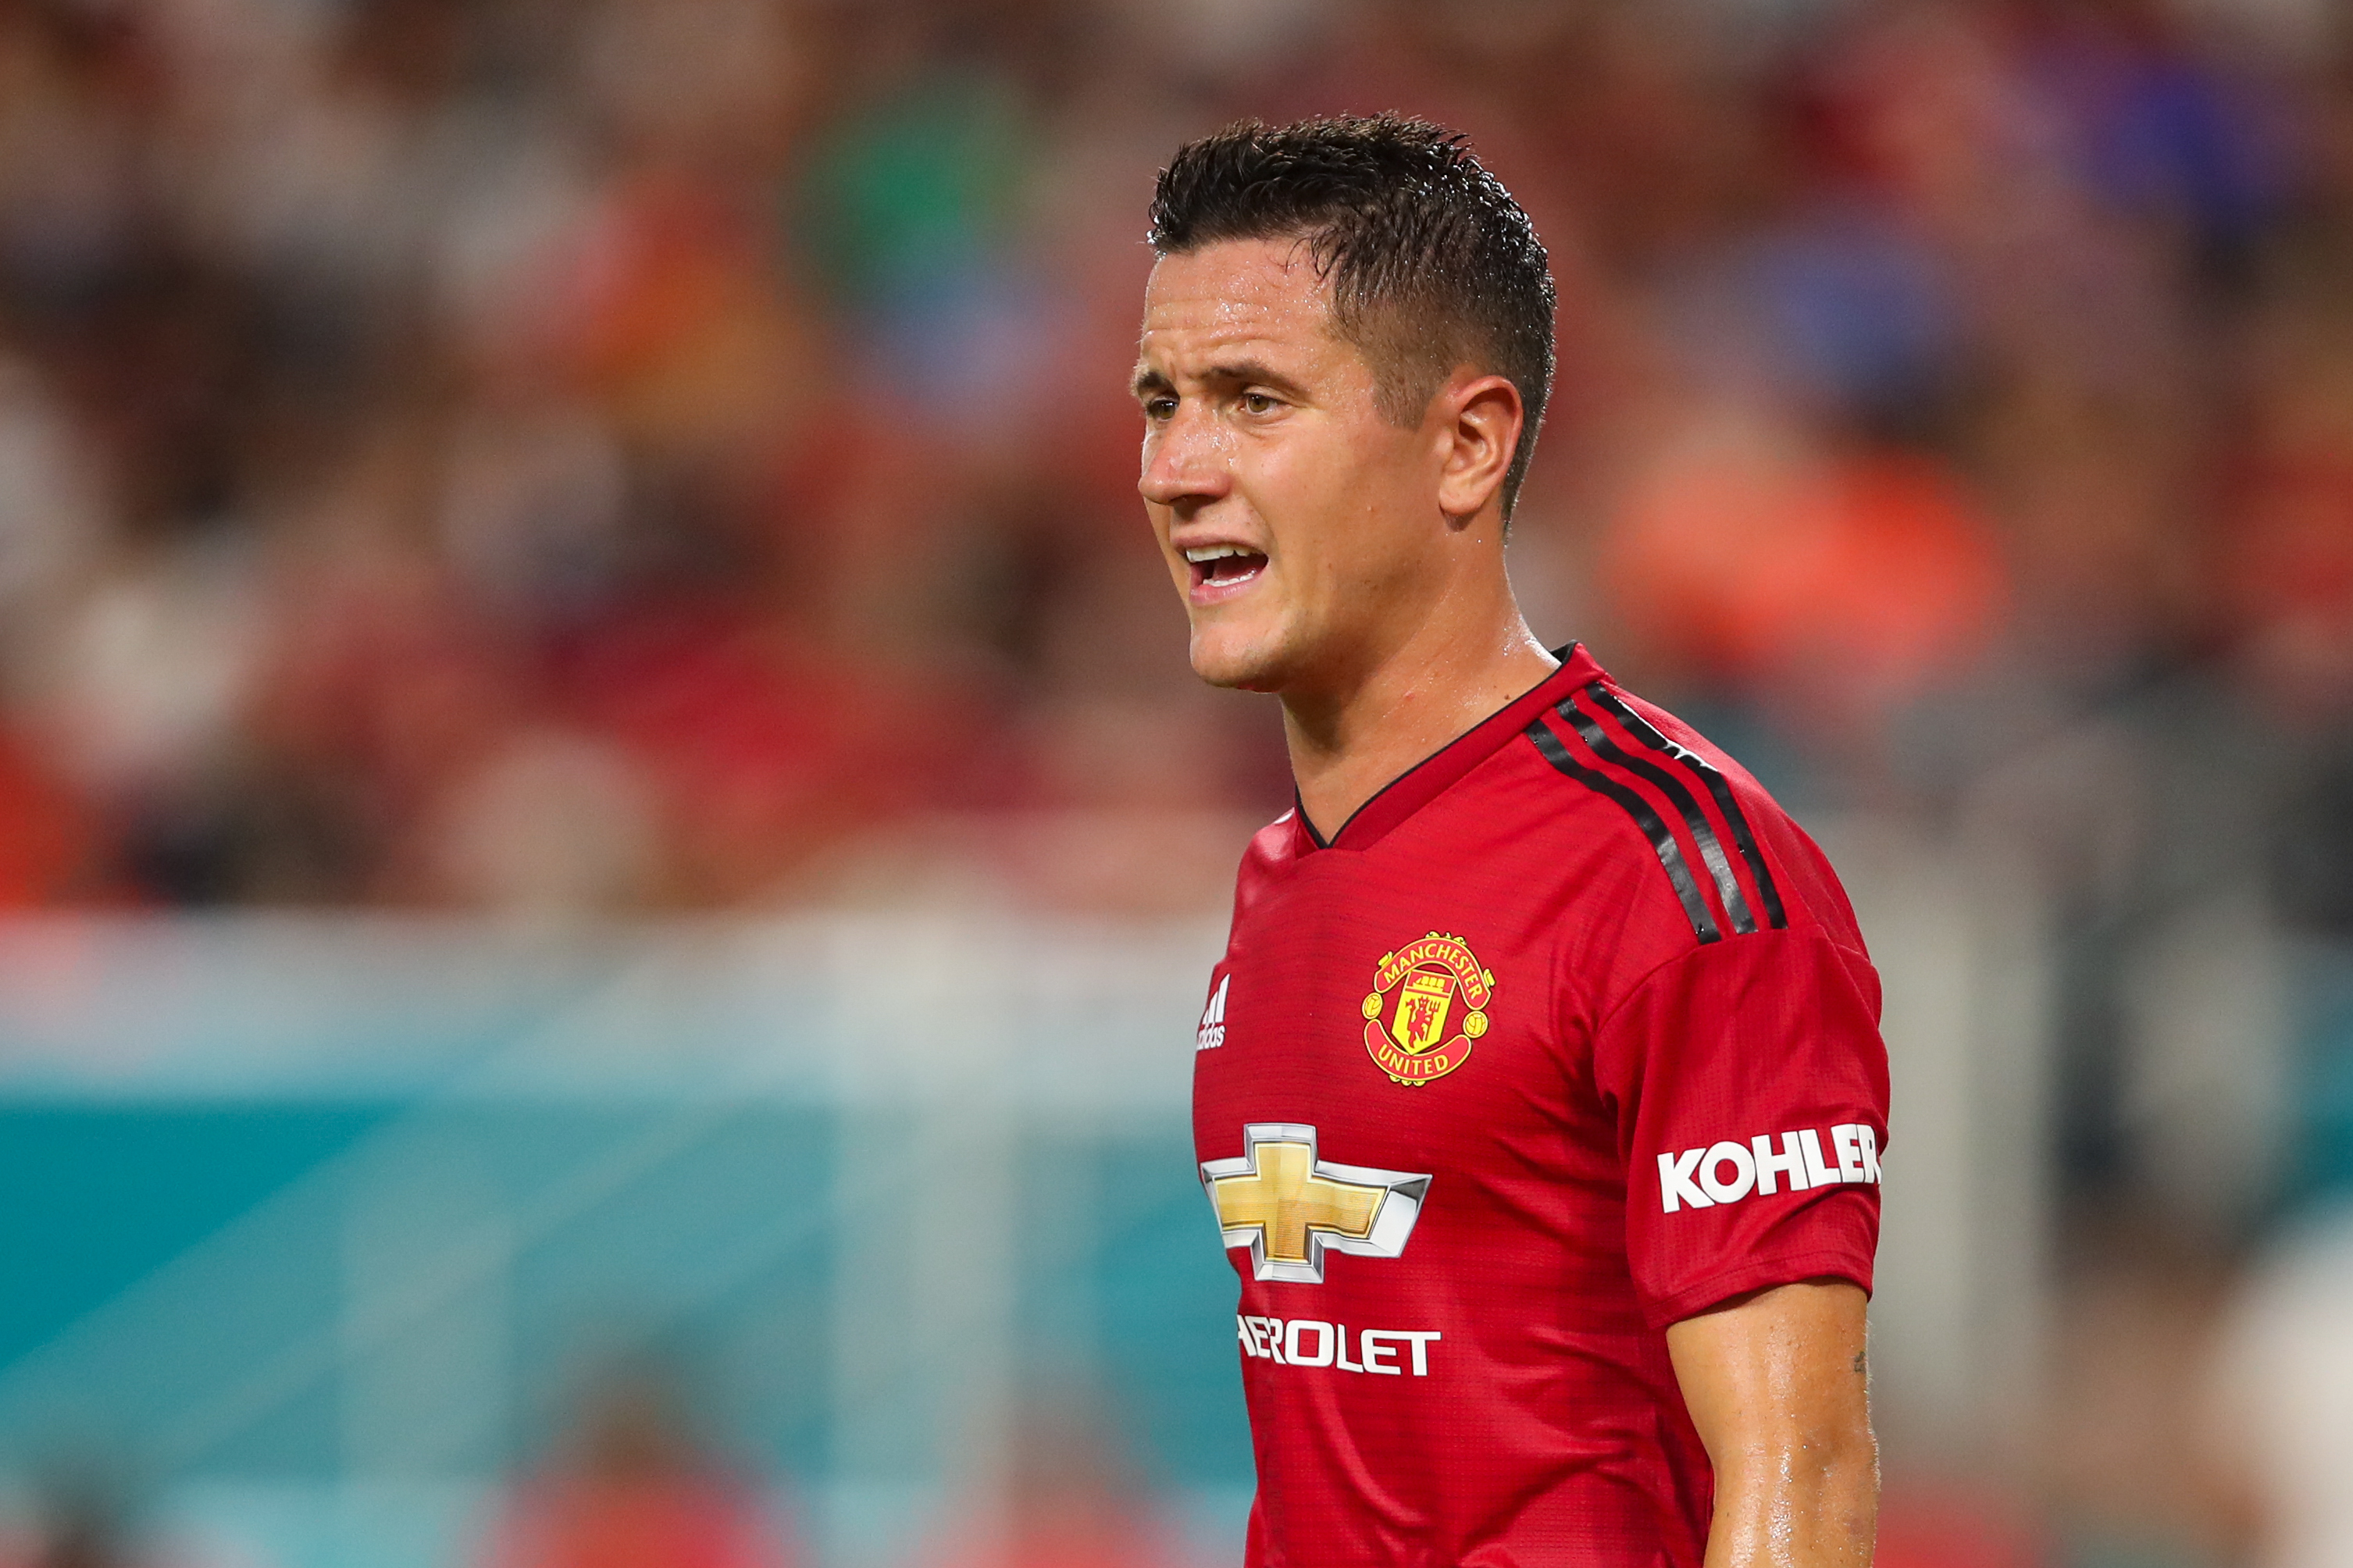 Manchester United Transfer News Ander Herrera Wants To Stay In Latest Rumours Bleacher Report Latest News Videos And Highlights